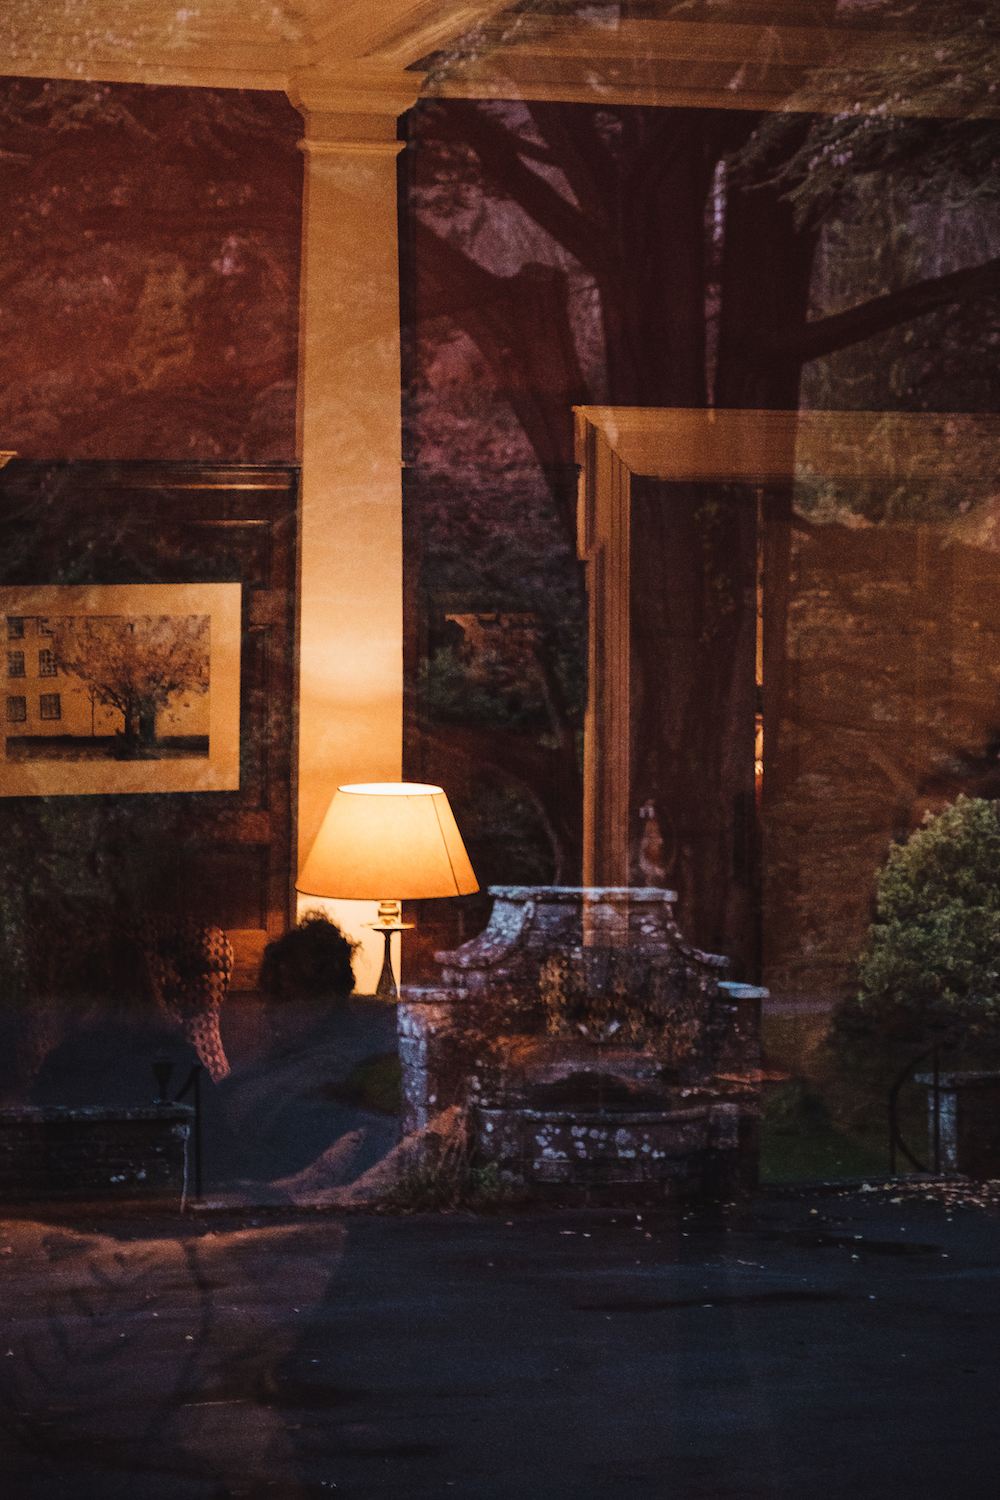 Gliffaes Country House Hotel, Brecon Beacons, Wales, UK - Travel Photography by Ben Holbrook from DriftwoodJournals.com13